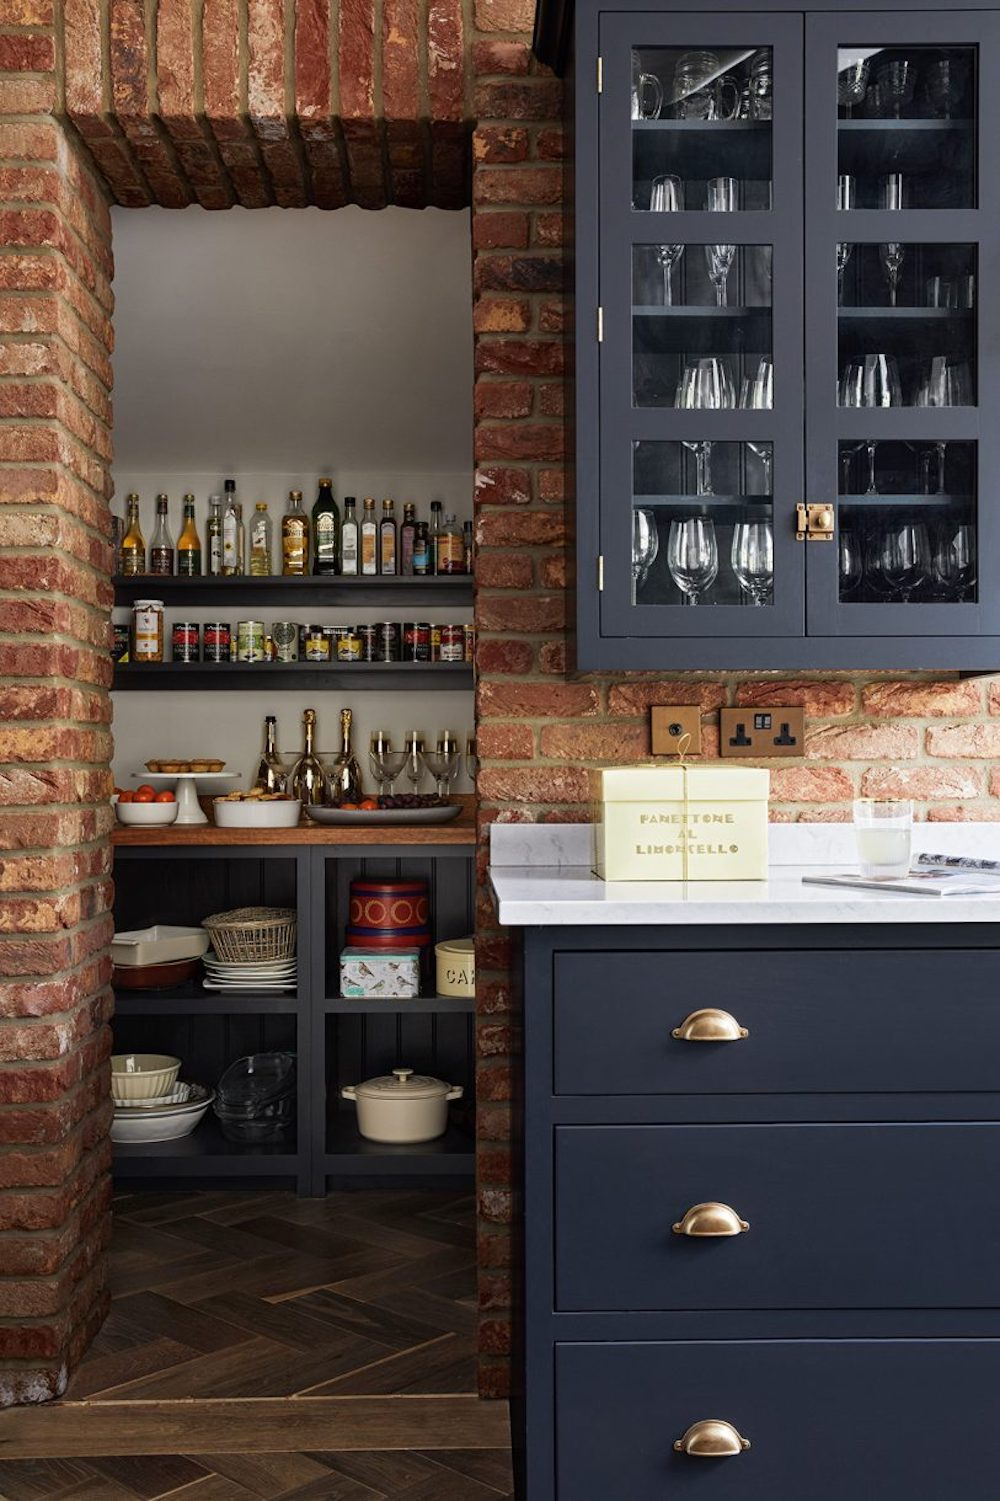 Small walk-in under stairs pantry || First Sense kitchen renovation inspiration